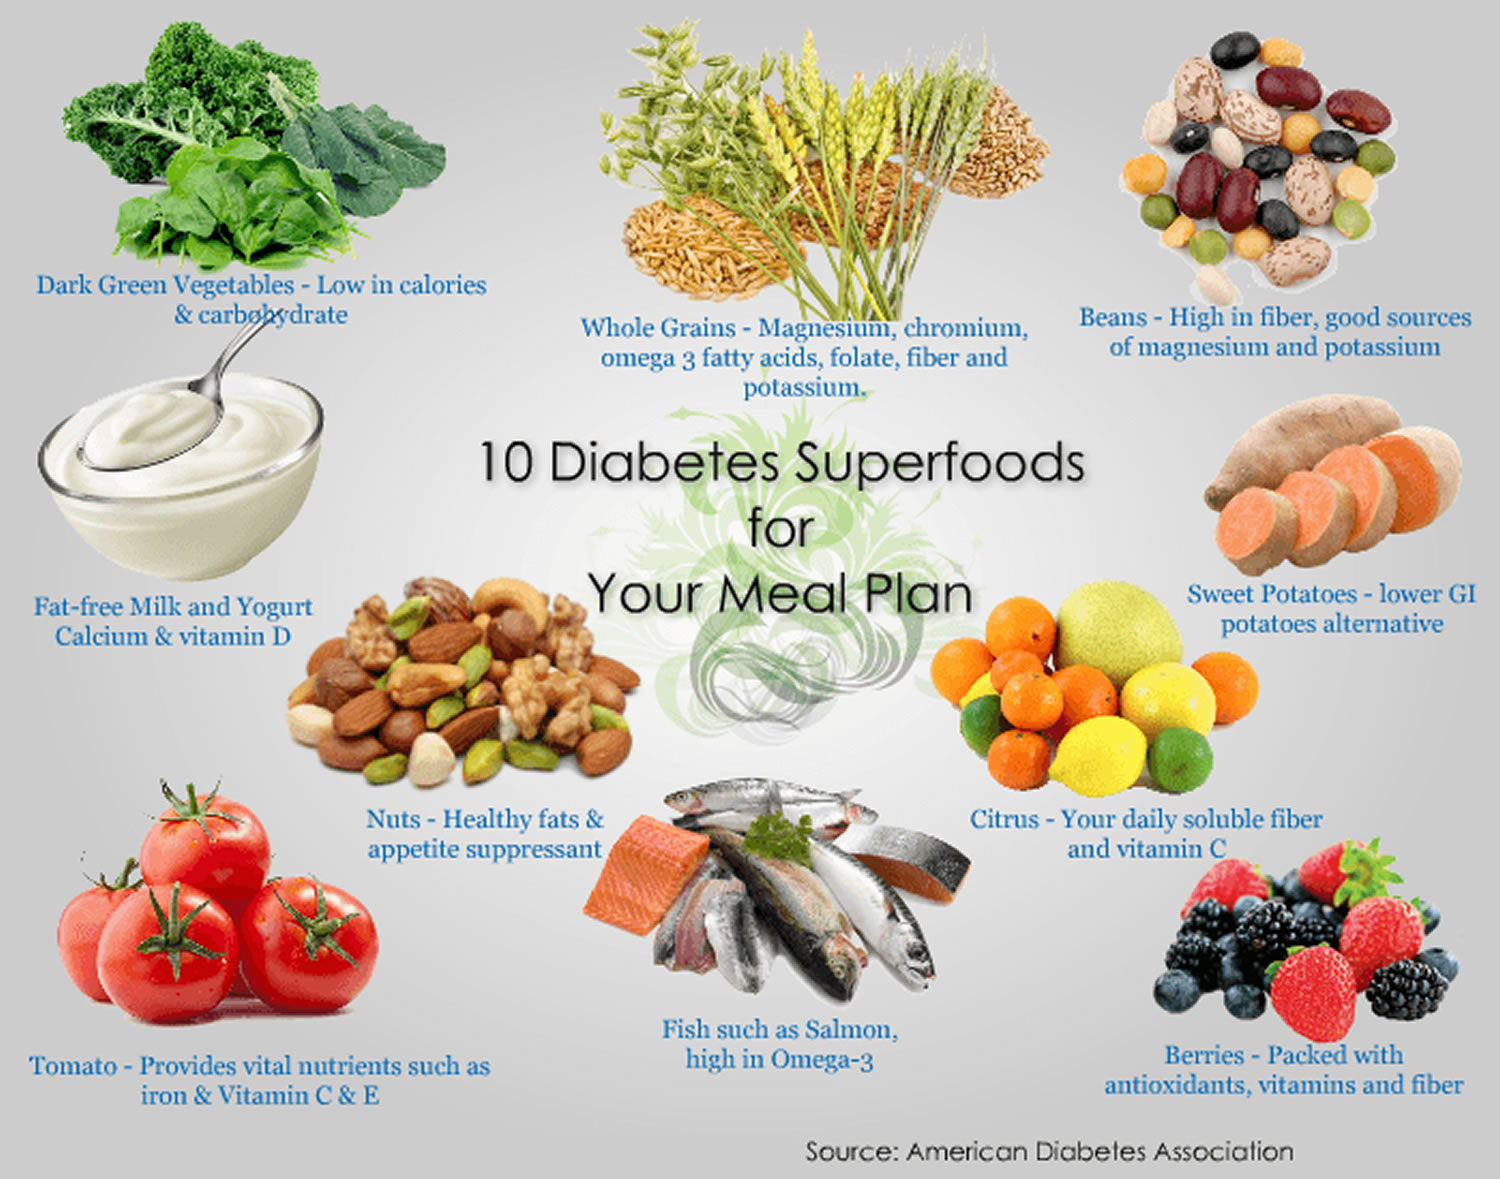 10 superfoods for diabetes